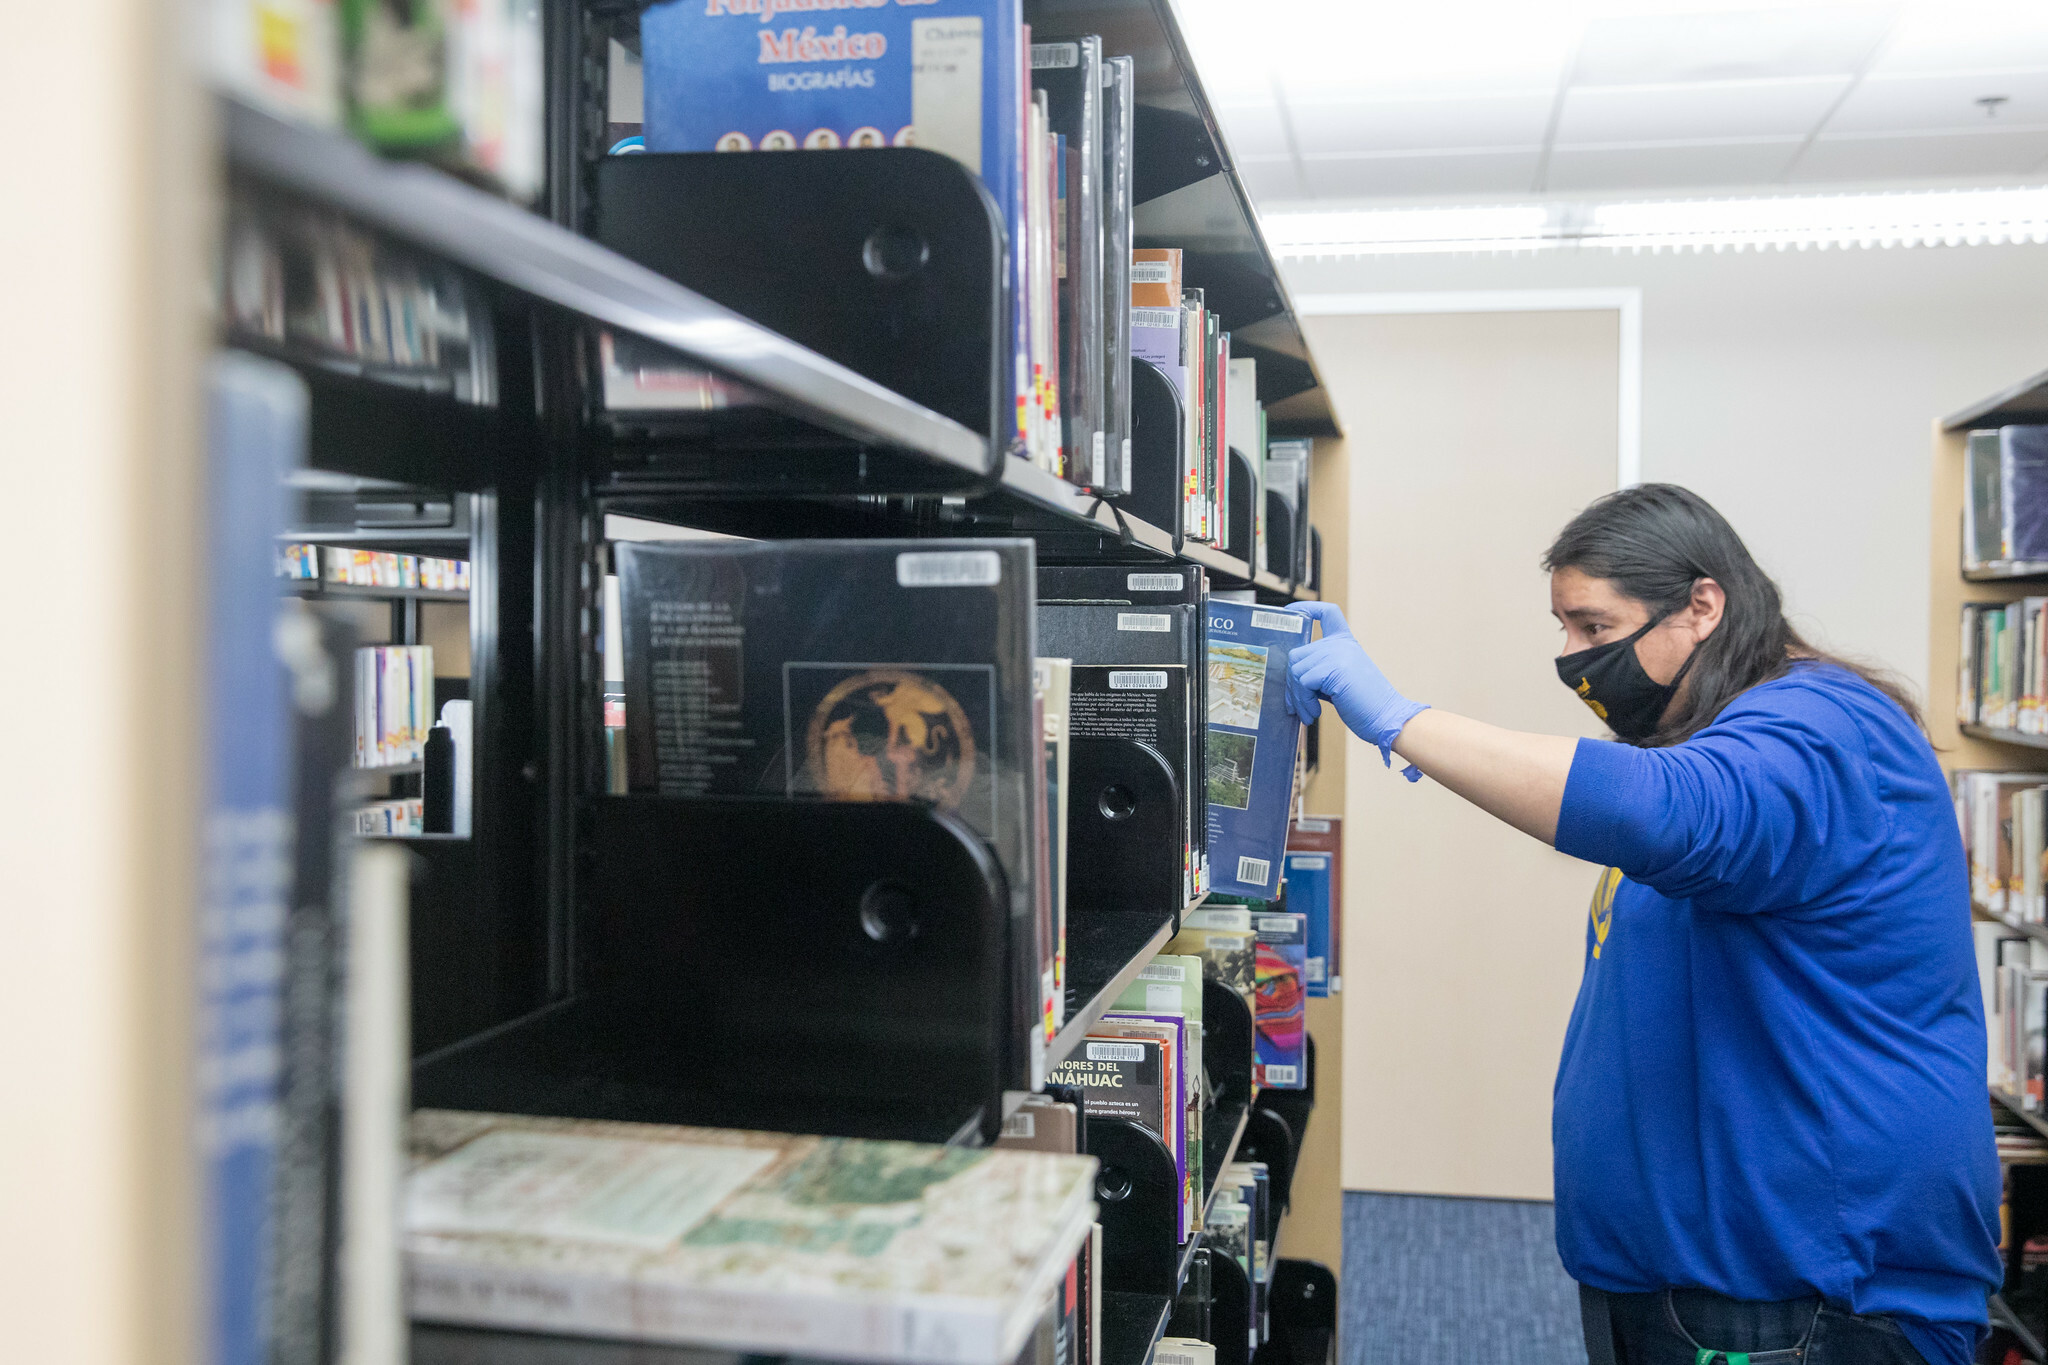 A man in a blue shirt and a black mask browses the shelves at Chavez Branch.